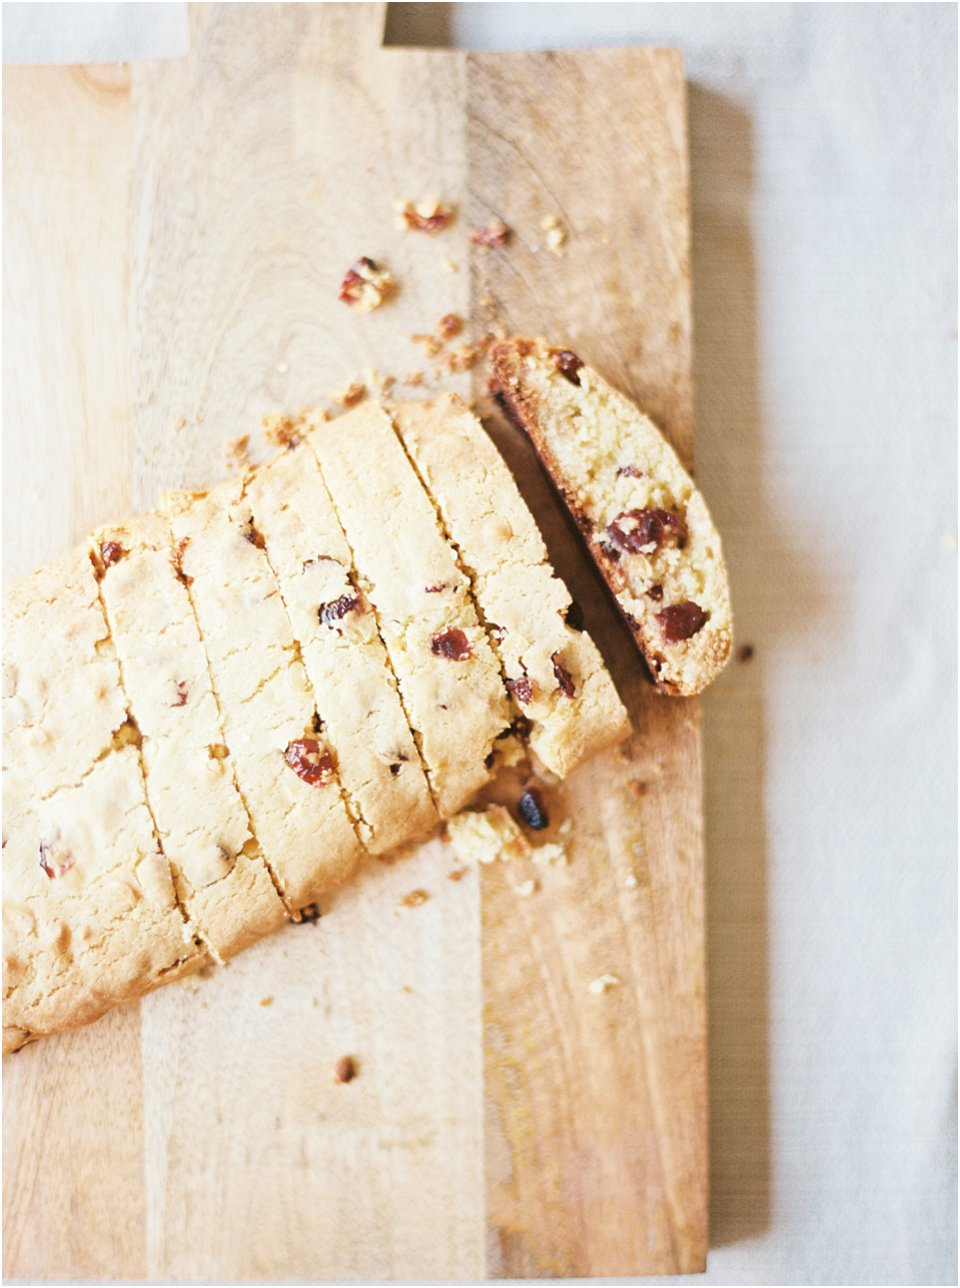 Jessica Christine Photography - Cranberry White Chocolate Biscotti